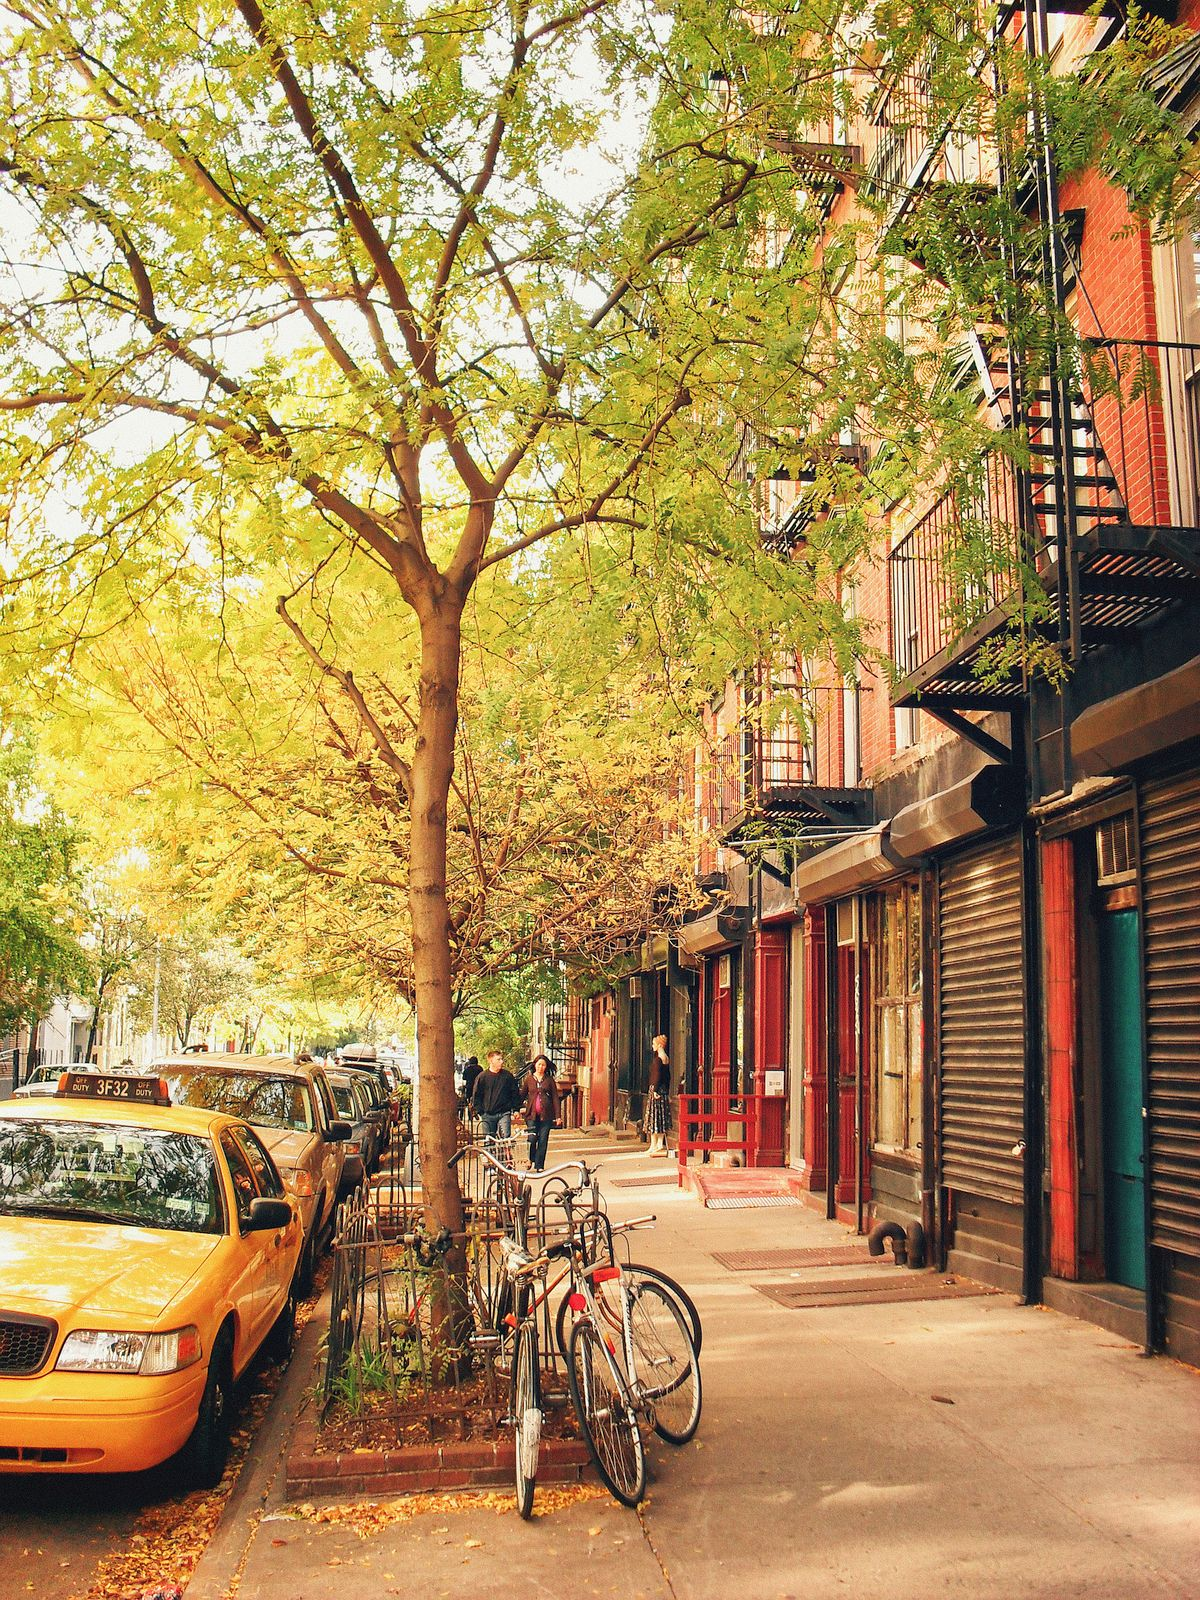 New England Fall Foliage Wallpaper Autumn In New York City In 24 Images Travel Away